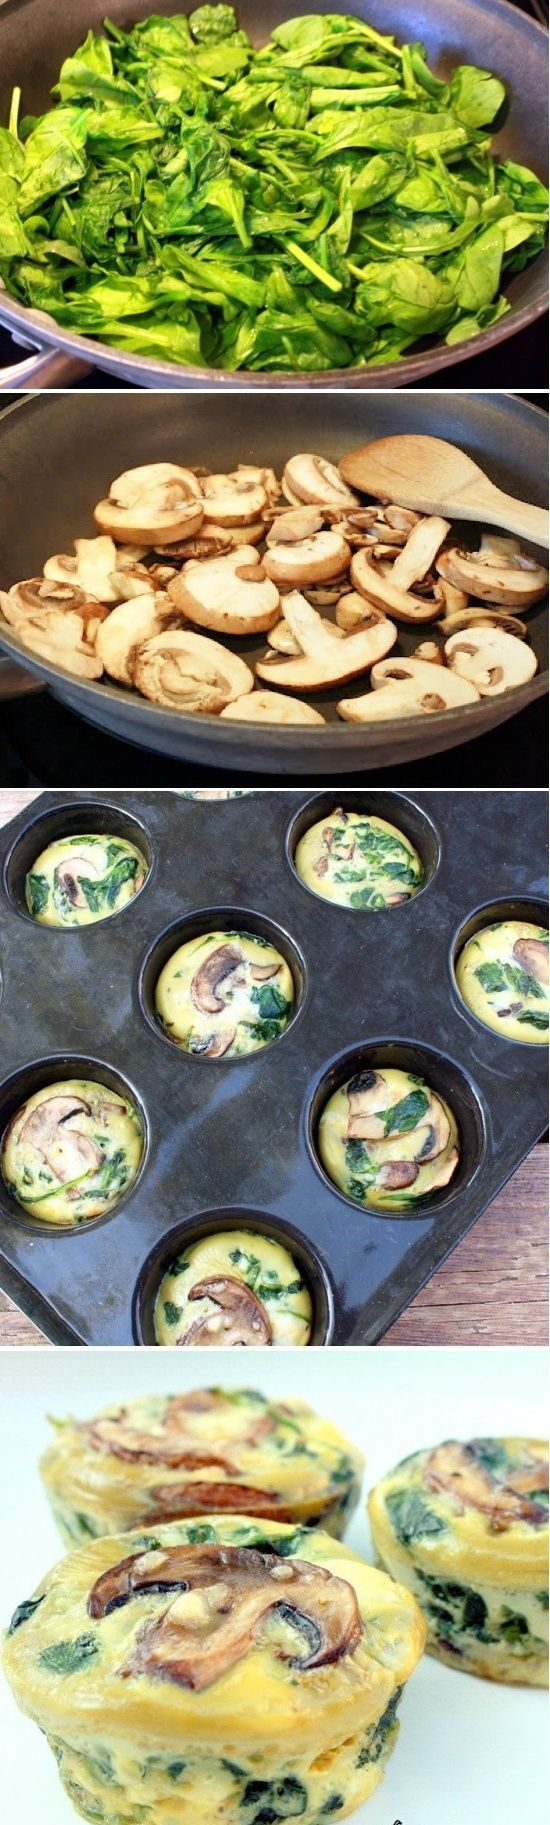 Healthy Spinach Mushroom Quiche Cups Recipe. Completely gluten-free and low-carb healthy and delicious SPINACH QUICHE CUPS that everyone will enjoy. Perfect for breakfast or brunch!